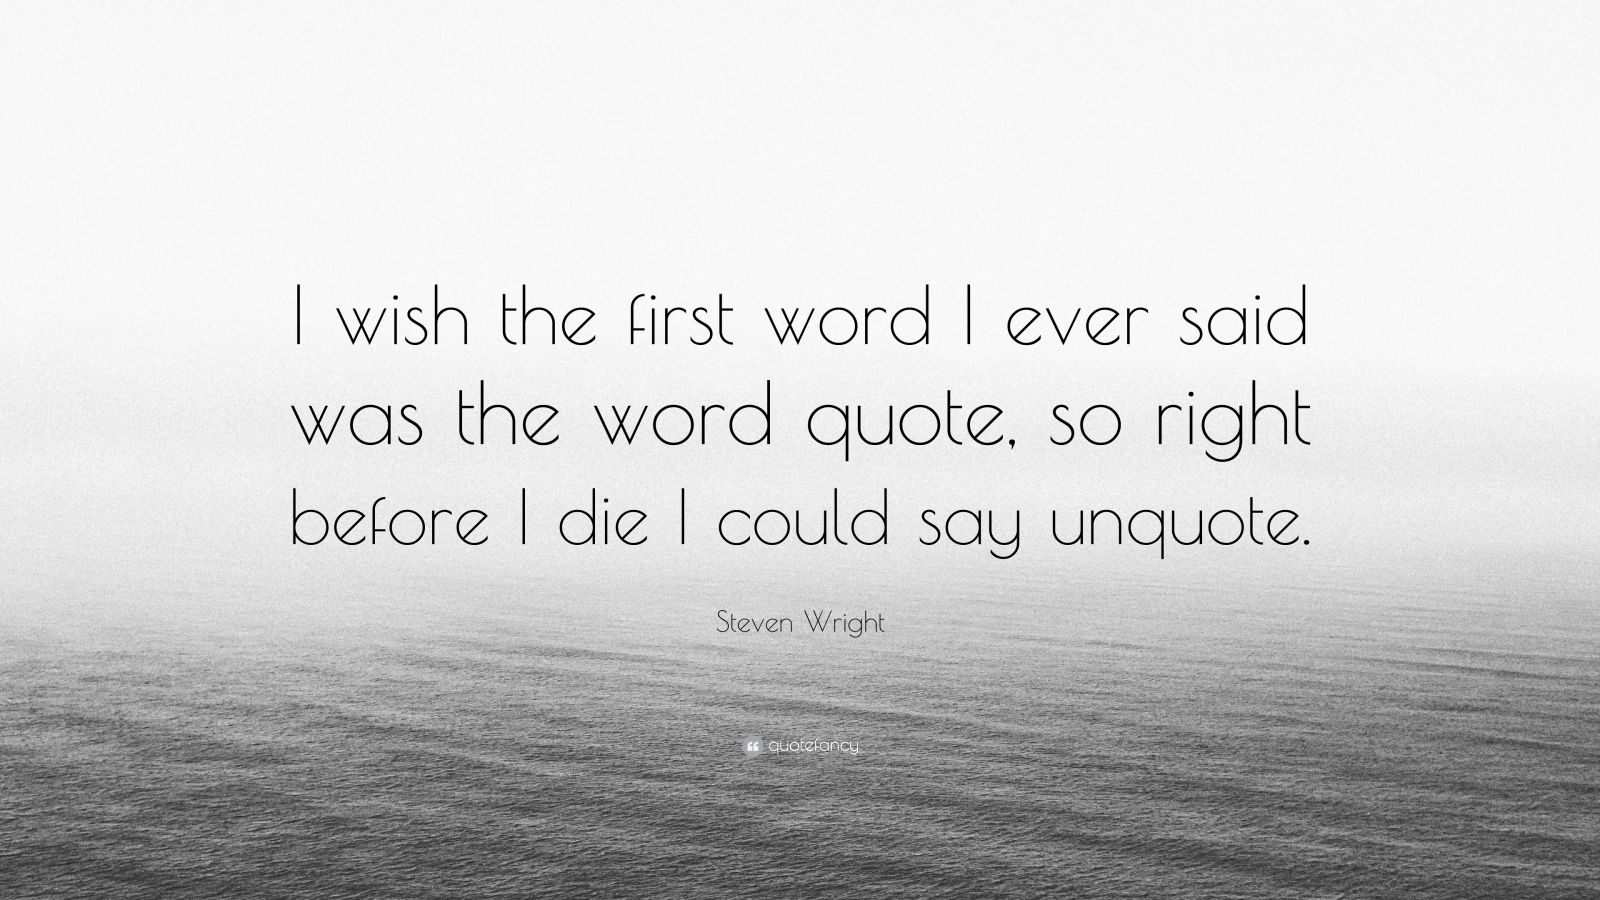 """Steven Wright Quote: """"I wish the first word I ever said was the word quote, so right before I die I could say unquote."""""""